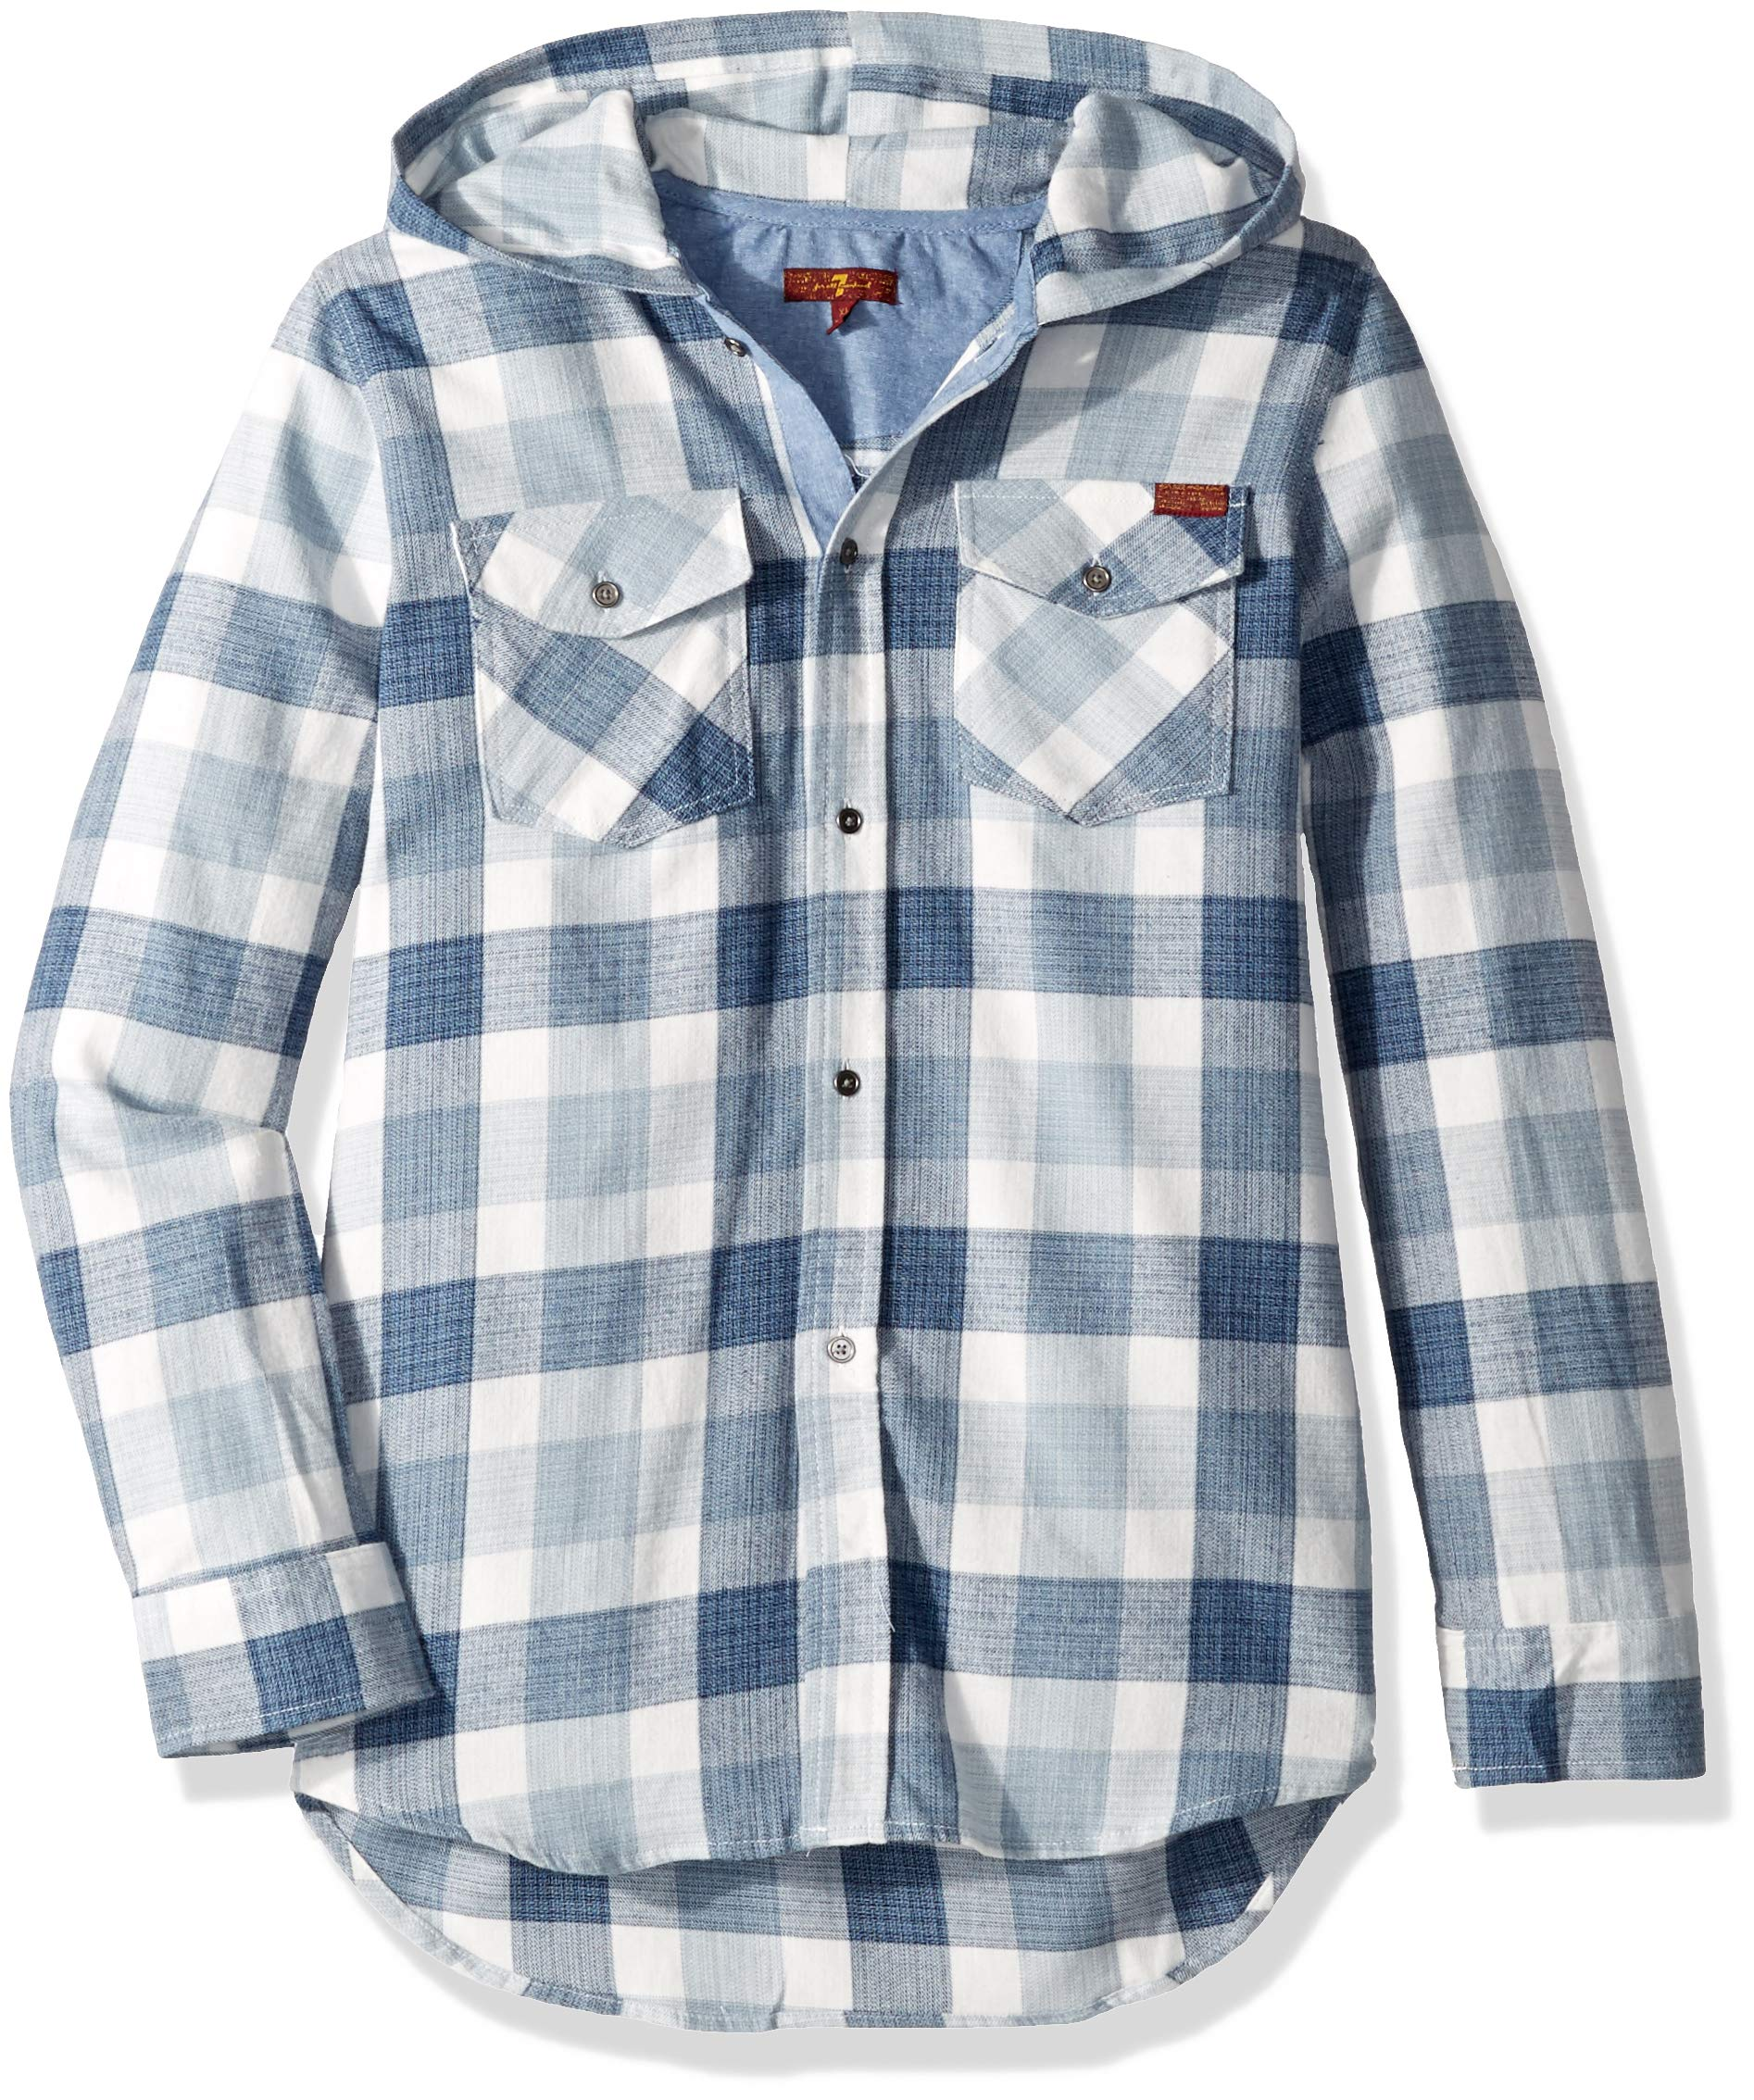 7 For All Mankind Kids Boys' Big' Long Sleeve Hooded Shirt, Plaid, XL